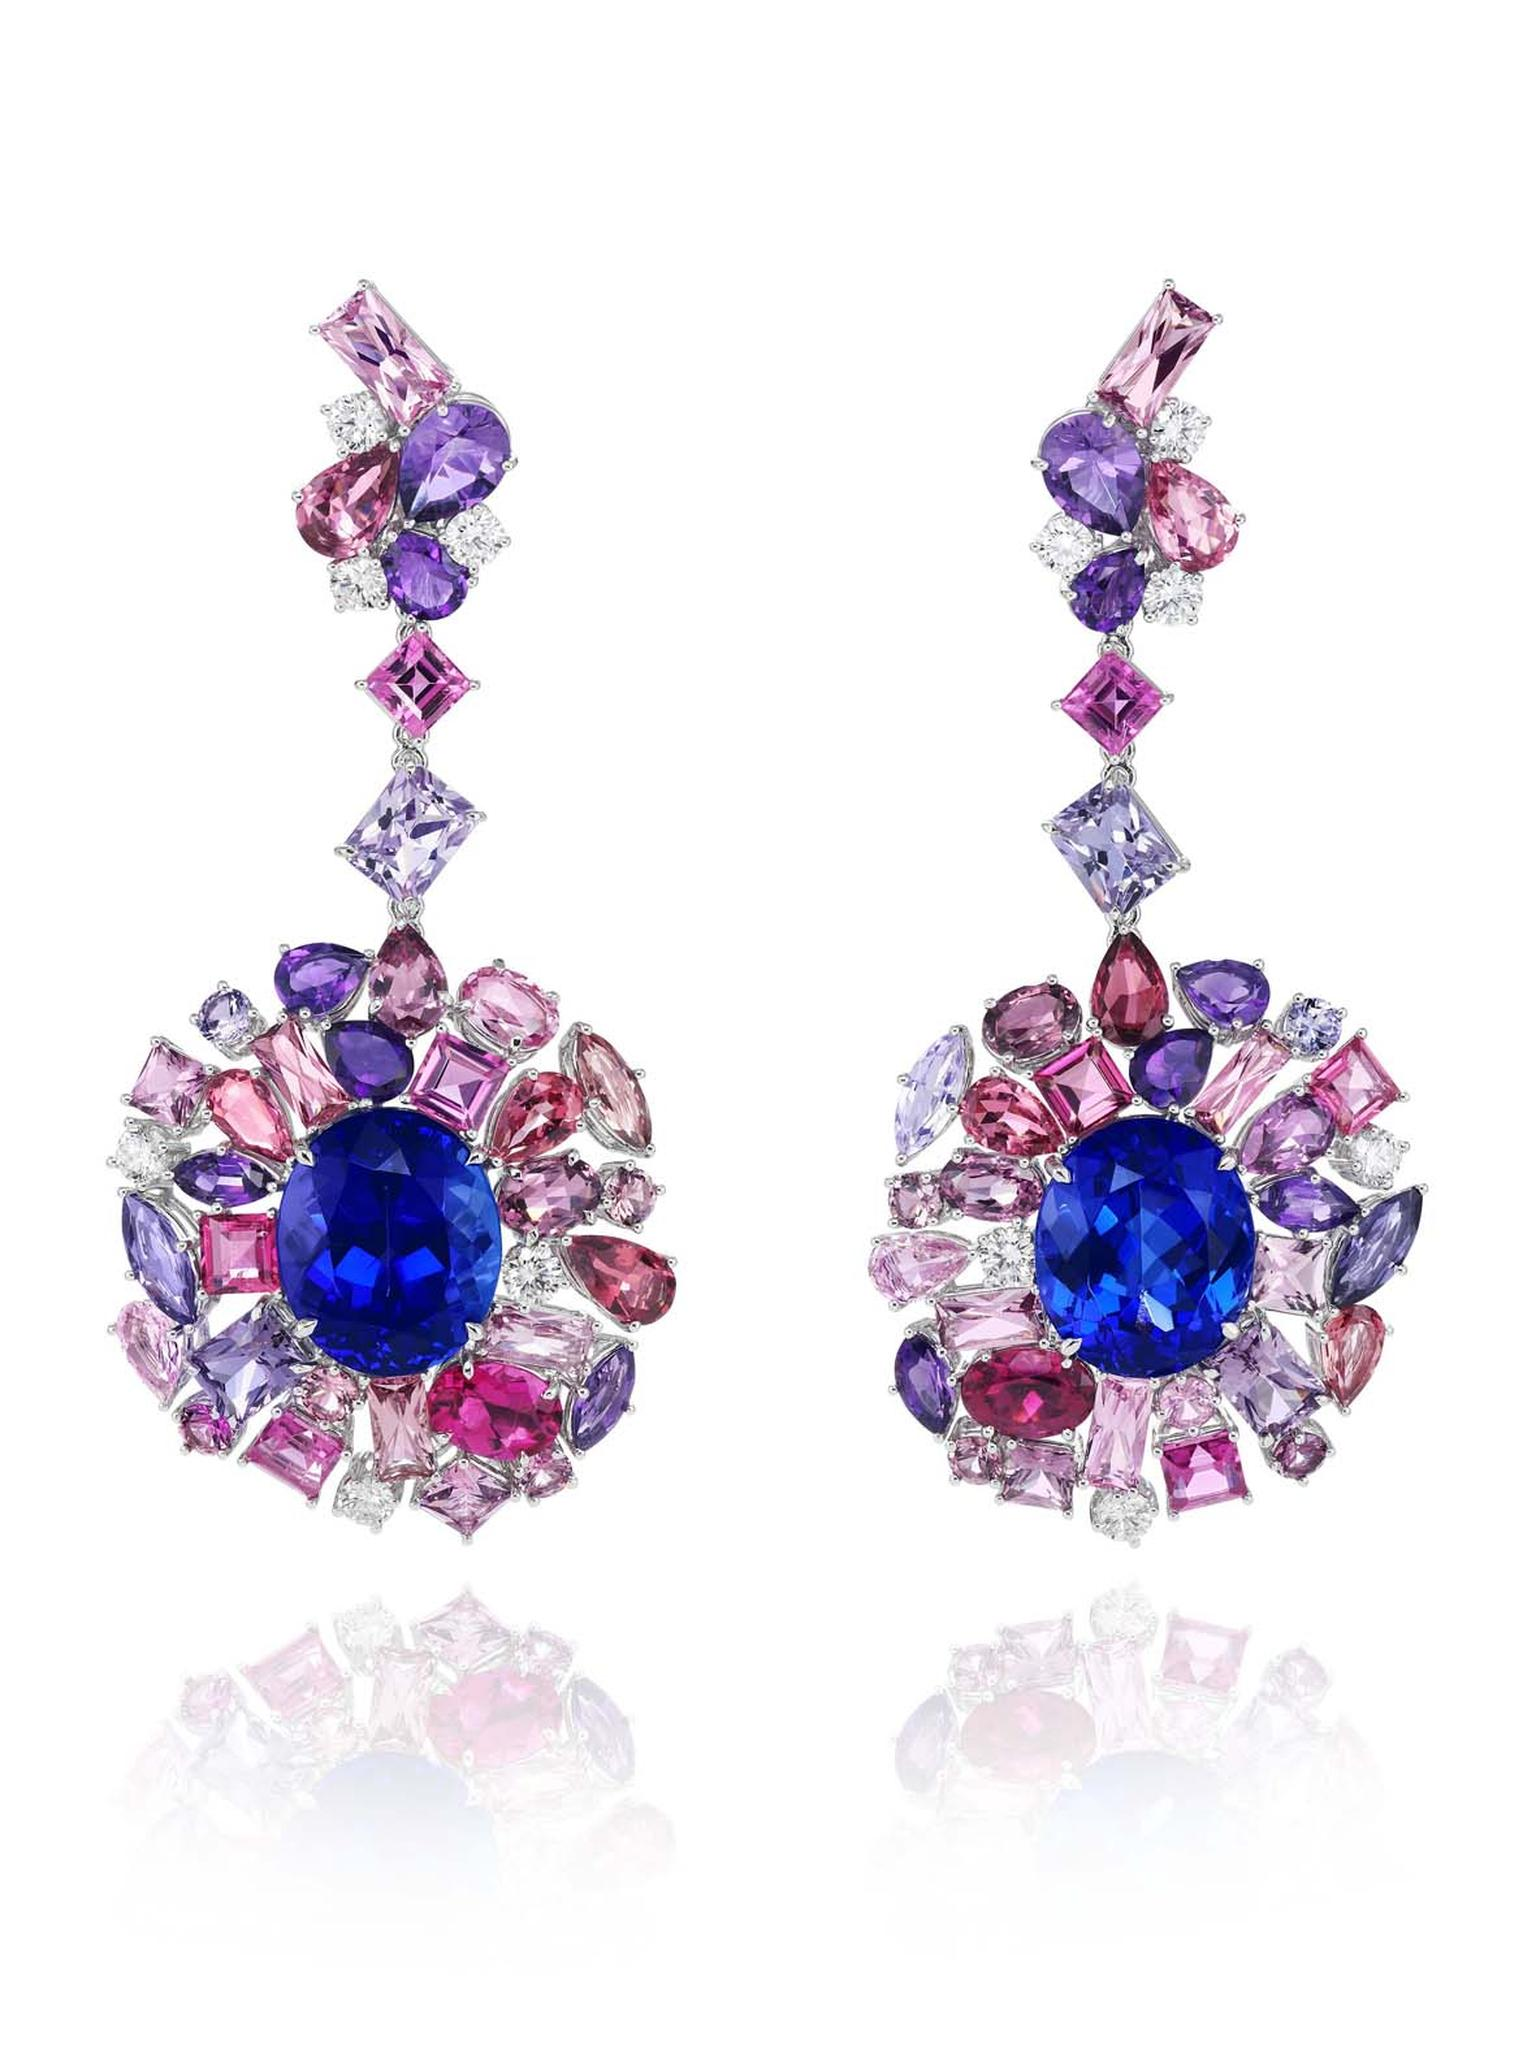 849374-1001 Tanzanite Earrings  from the Red Carpet Collection 2013ChopardChopard.jpg